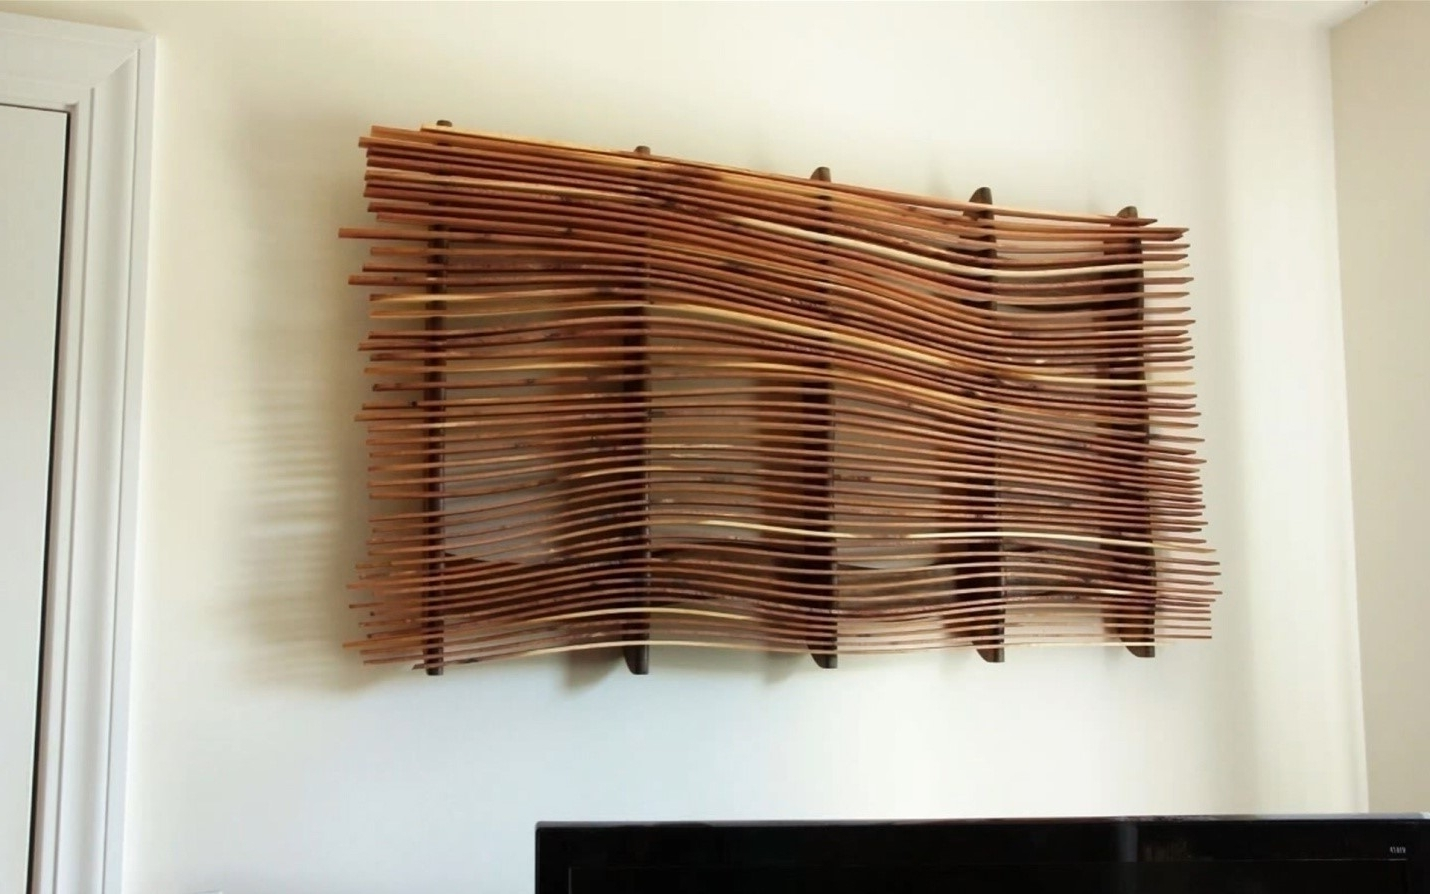 Well Known Wood Wall Art With Regard To How To Make Wall Art From Scrap Wood (View 13 of 15)